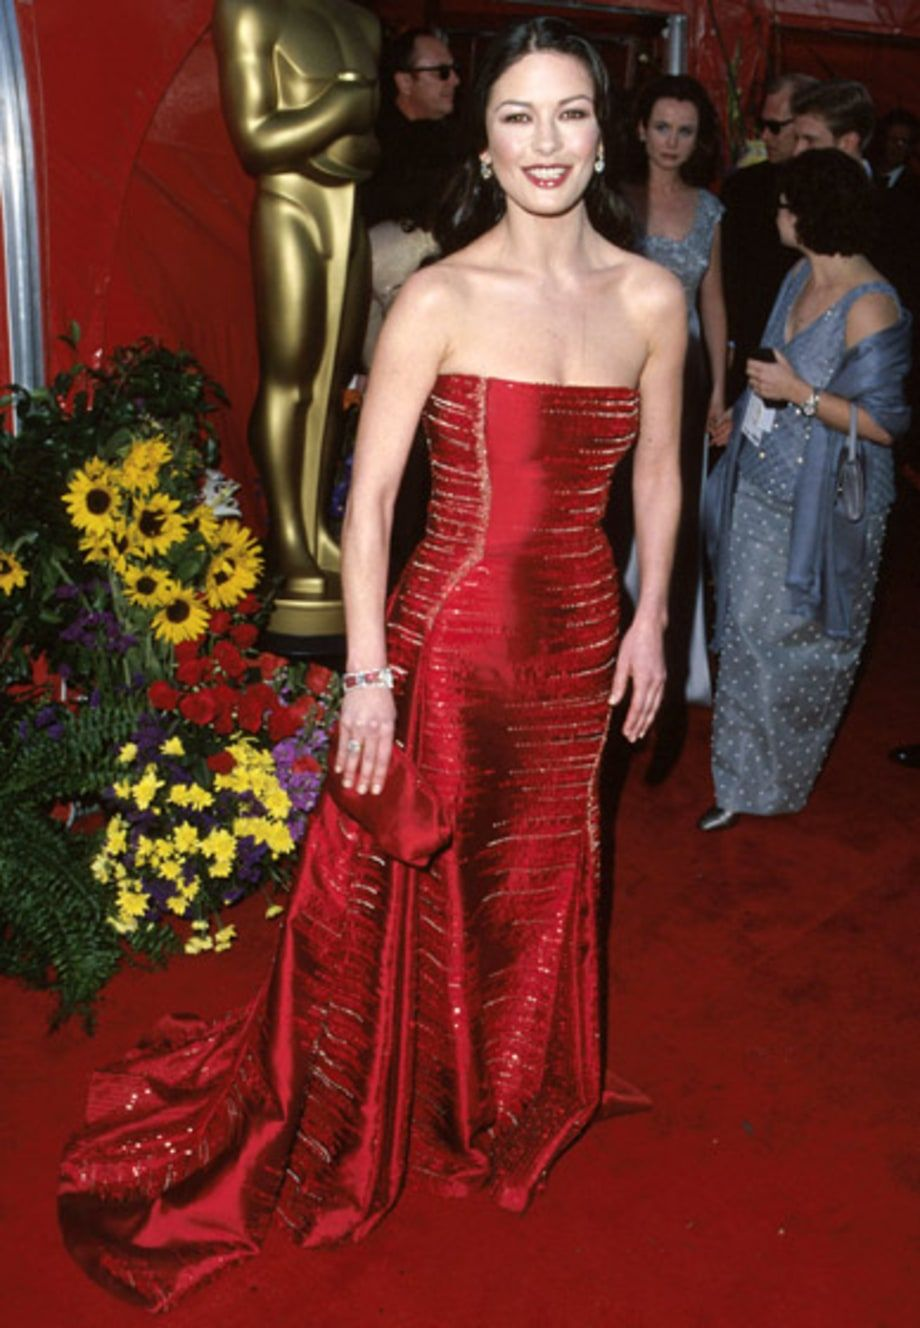 Oscars Red Carpet Fashion: Best Dressed Stars of All Time